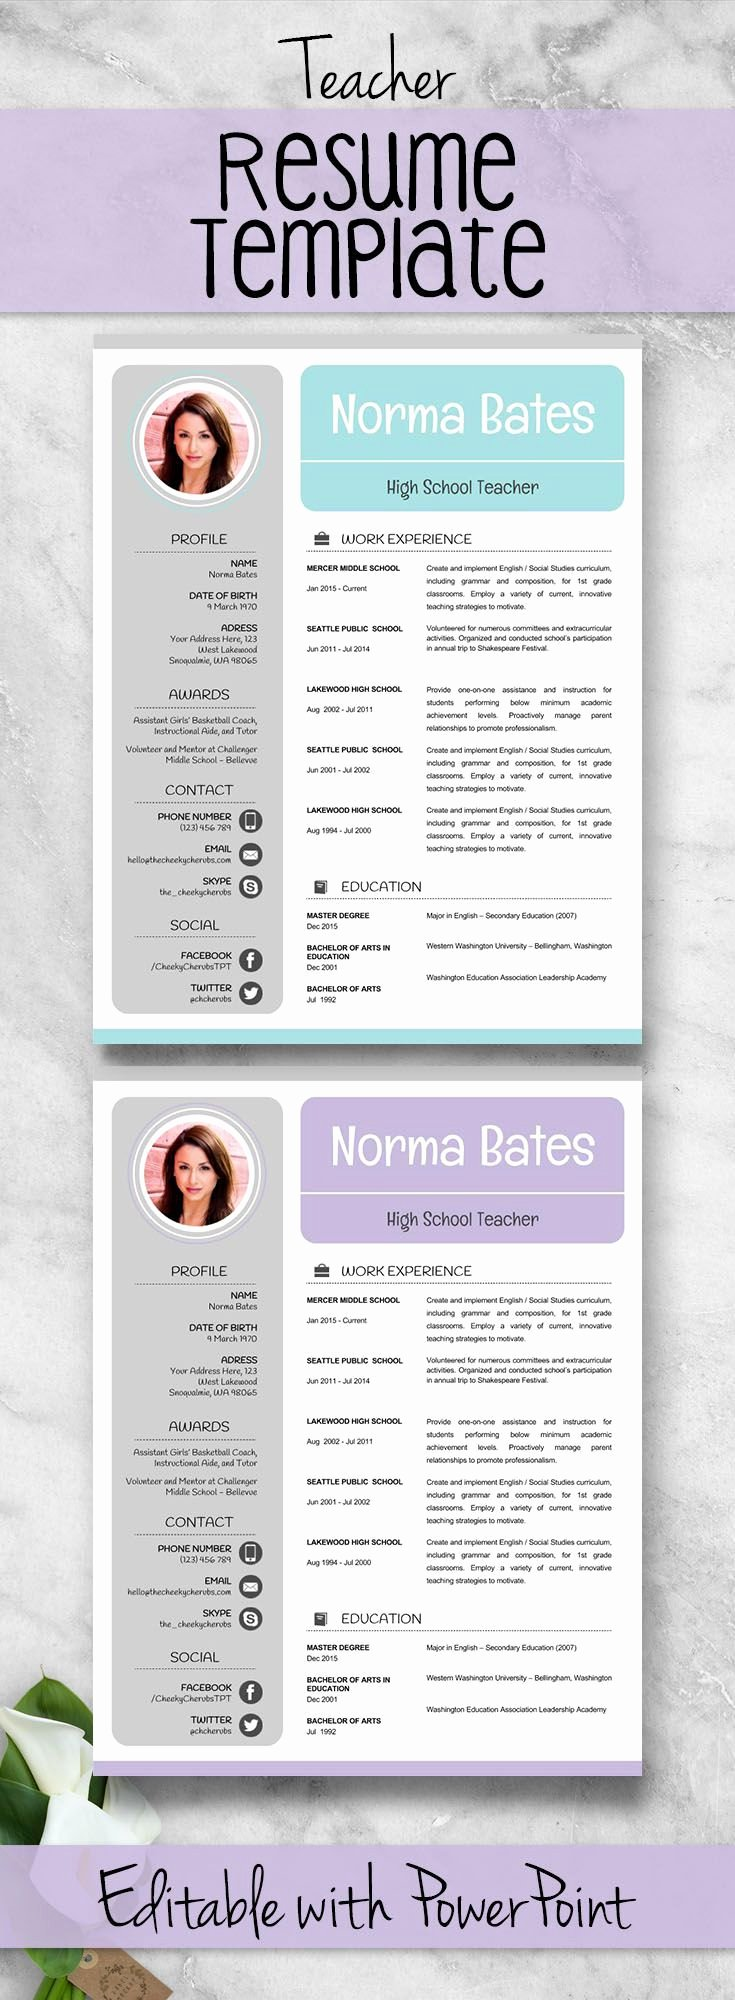 Resume Template for Teachers Beautiful 25 Best Teacher Resumes Ideas On Pinterest